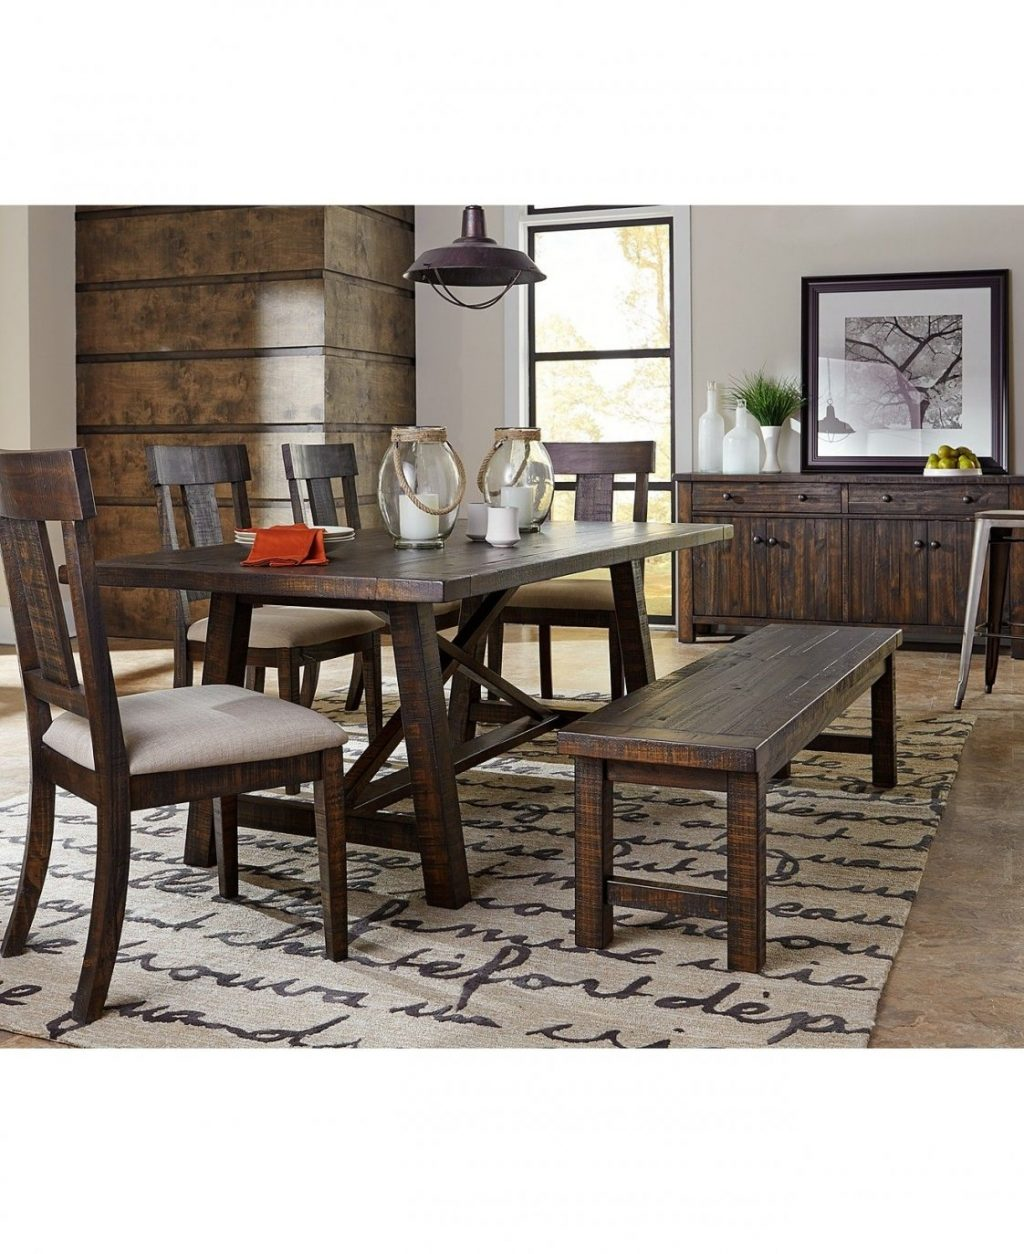 Download Macys Kitchen Table Sets Ember Dining Room Furniture In